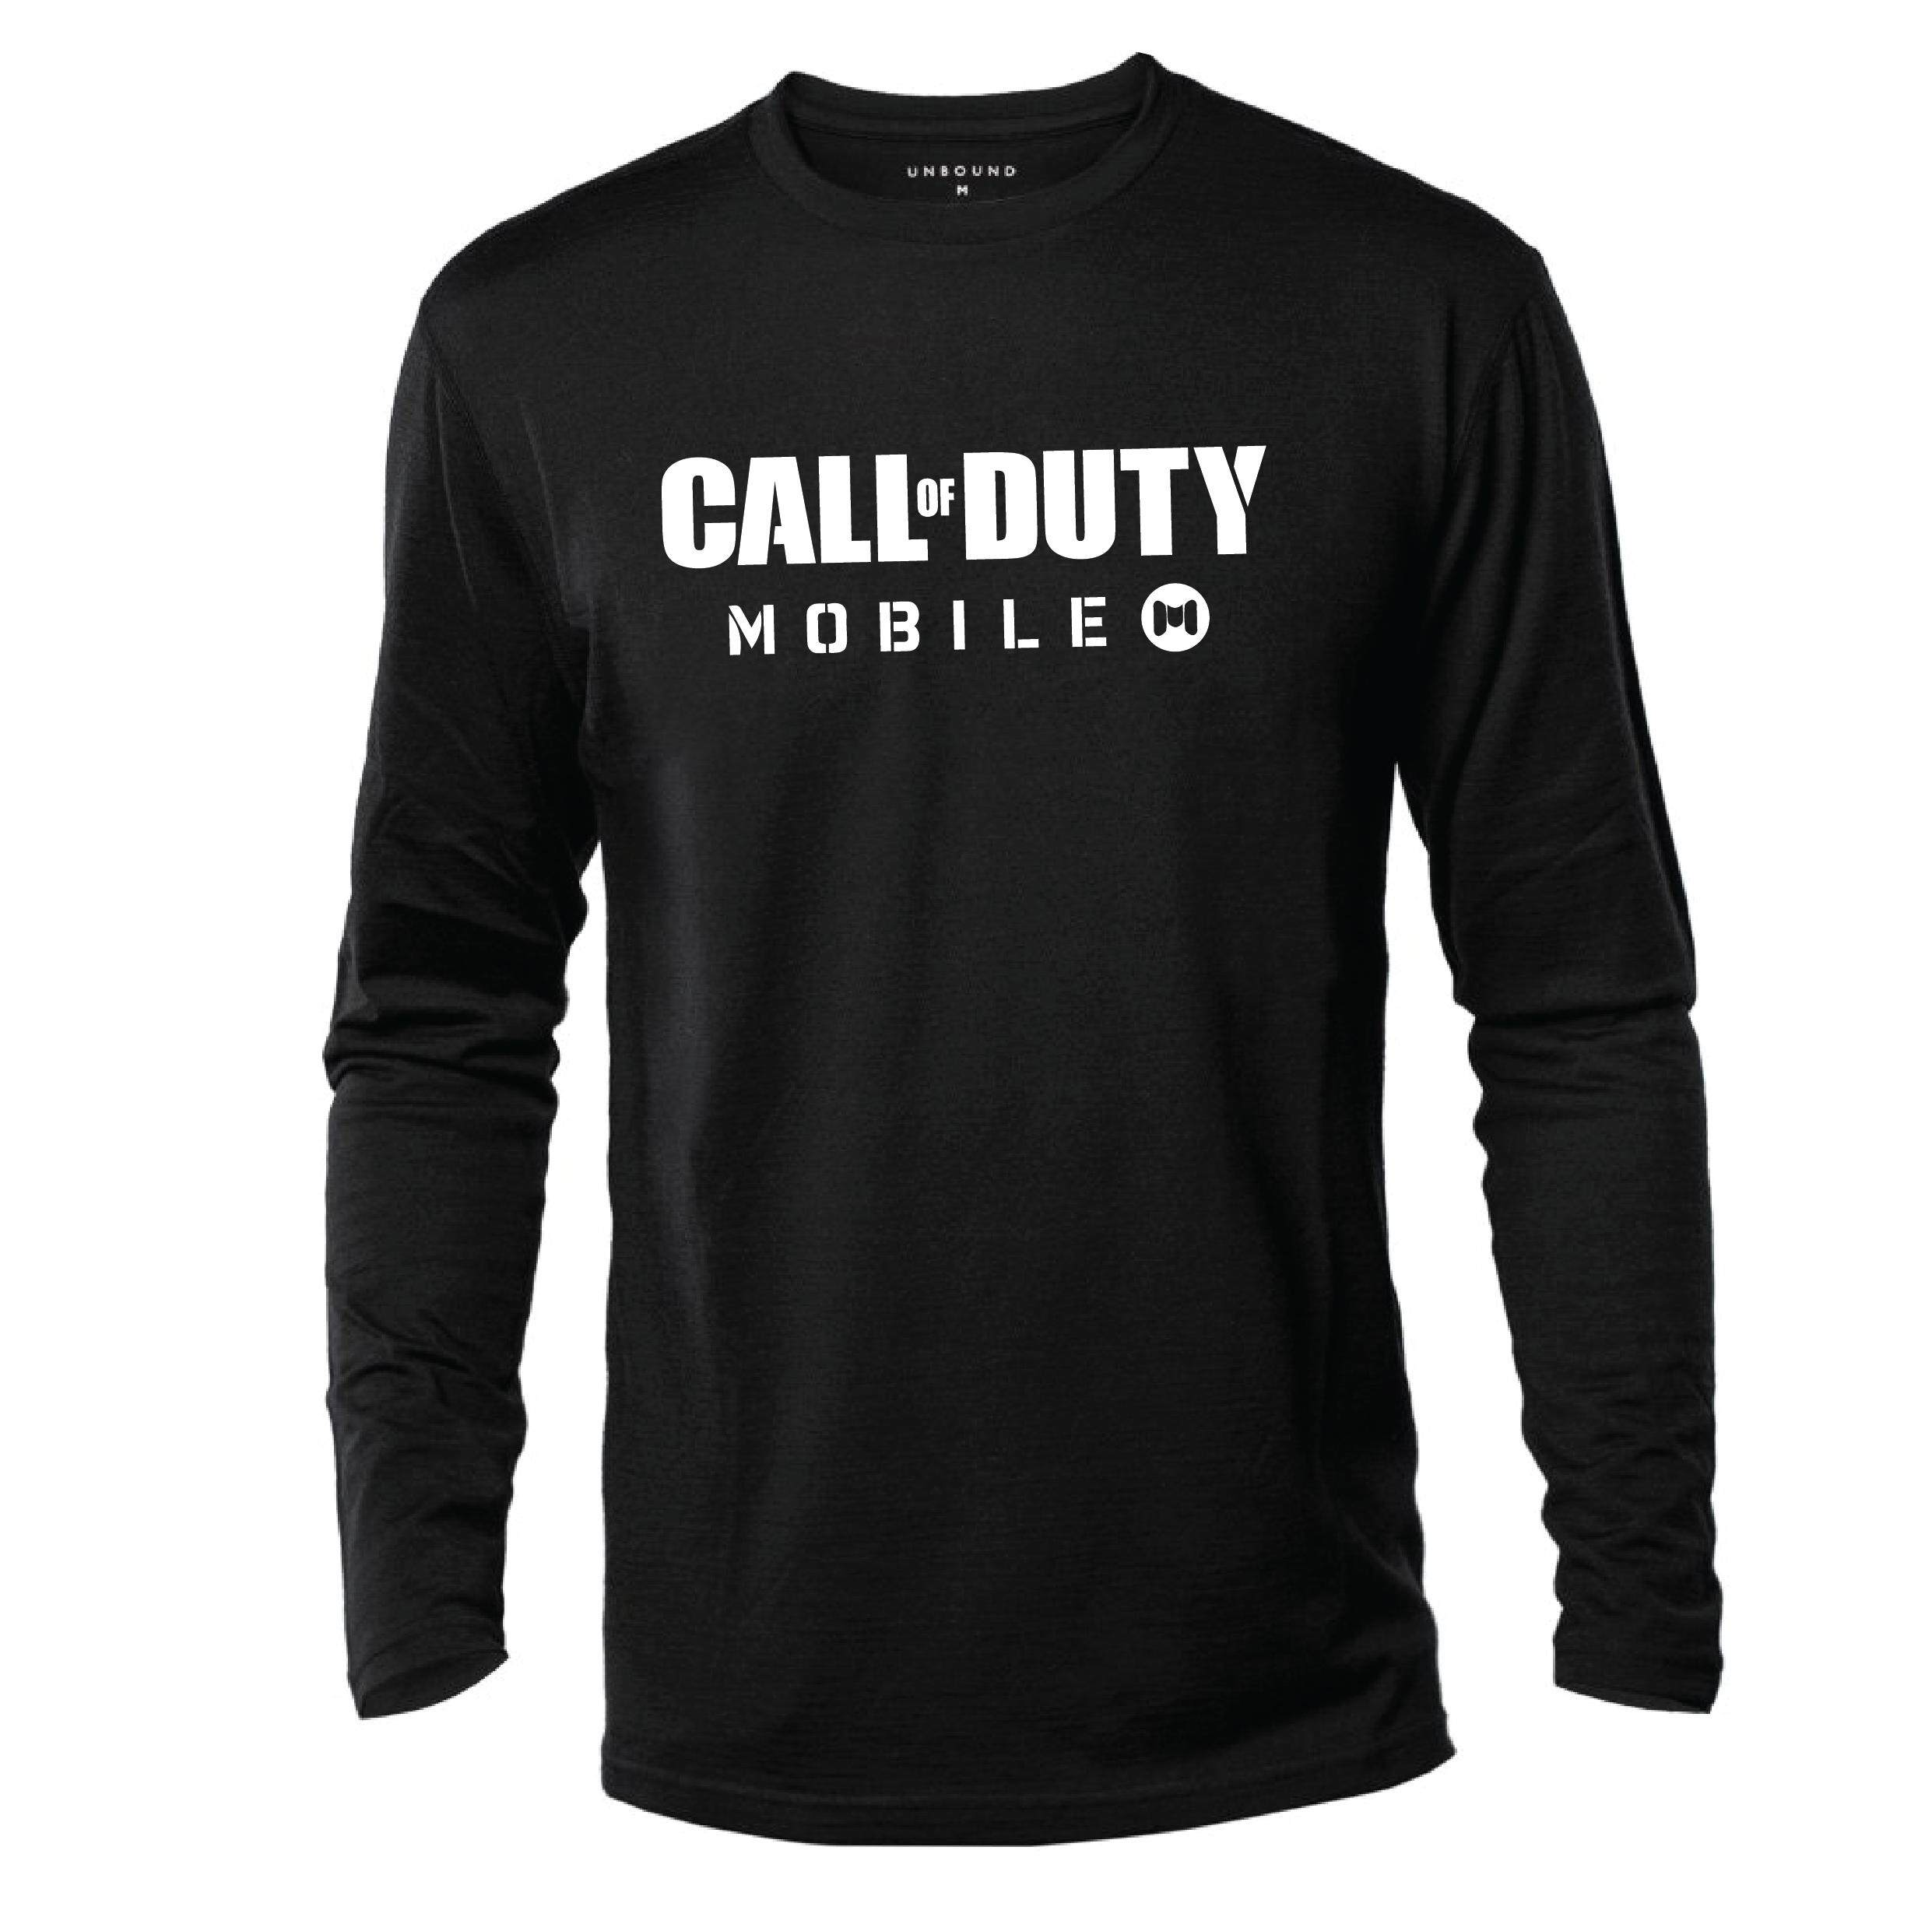 T-Shirt CALL OF DUTY MOBILE Front Printed Lengan Panjang 100% Cotton Baju Tshirt Black White Hitam Putih Bossku